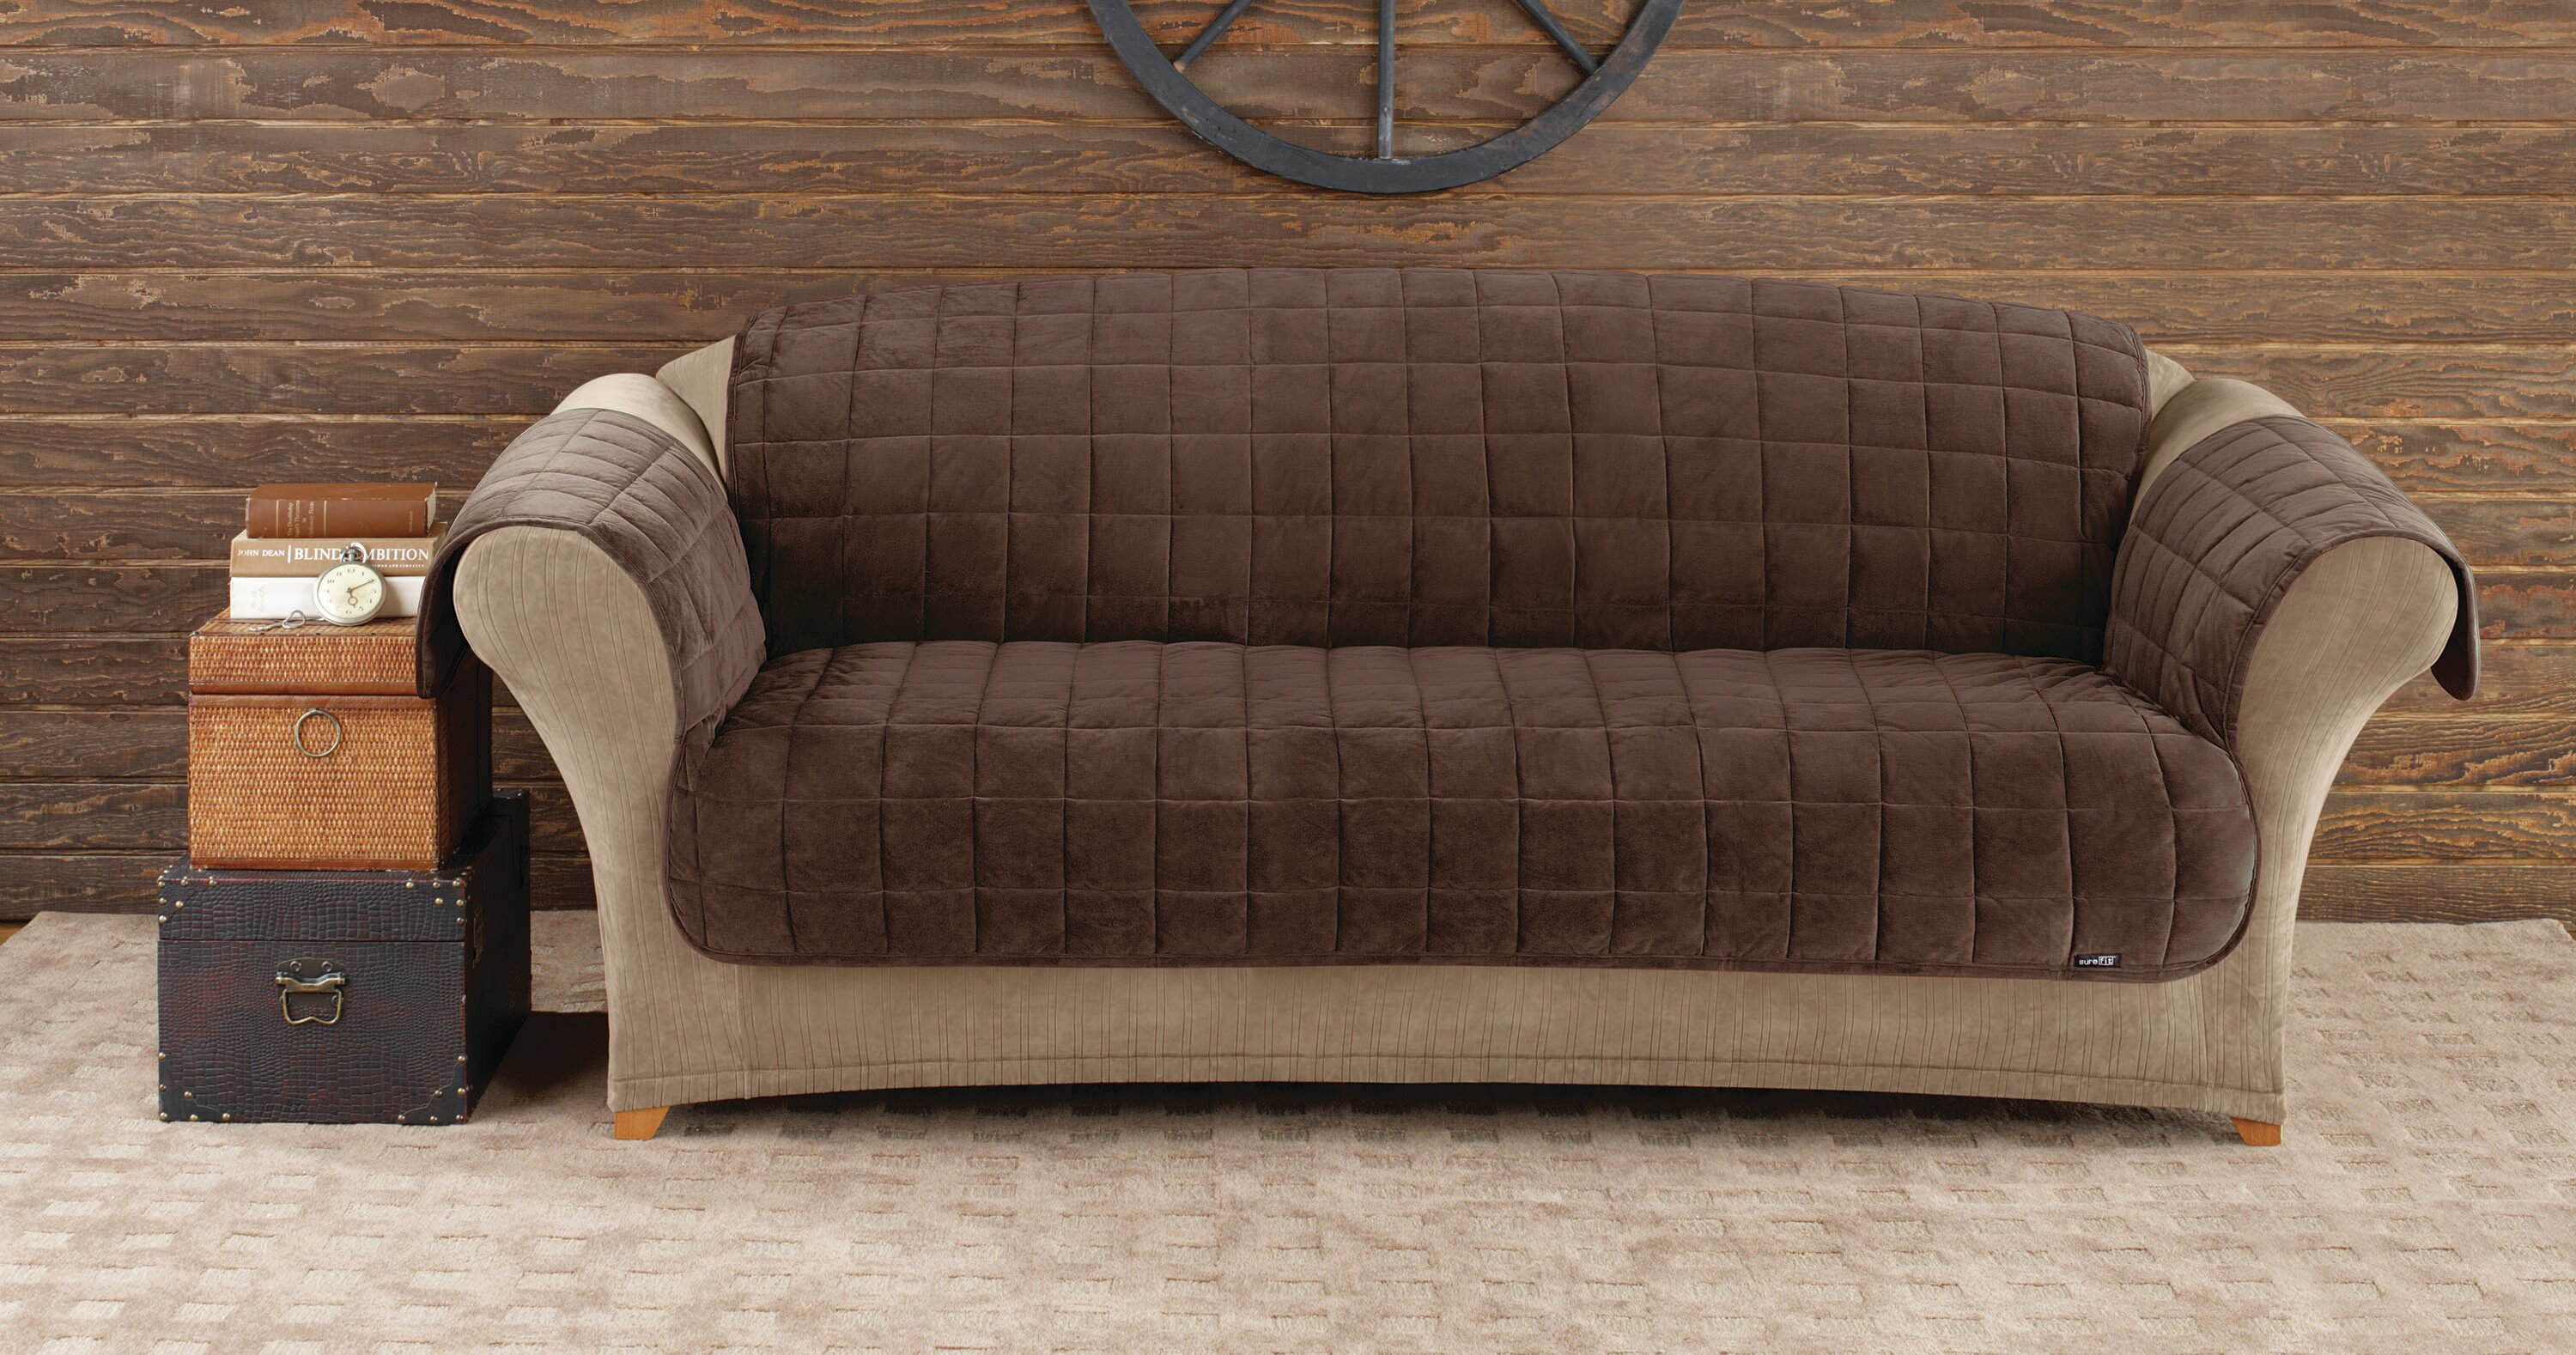 Extra Large Couch Covers All Slipcovers You Ll Love In 2021 Wayfair